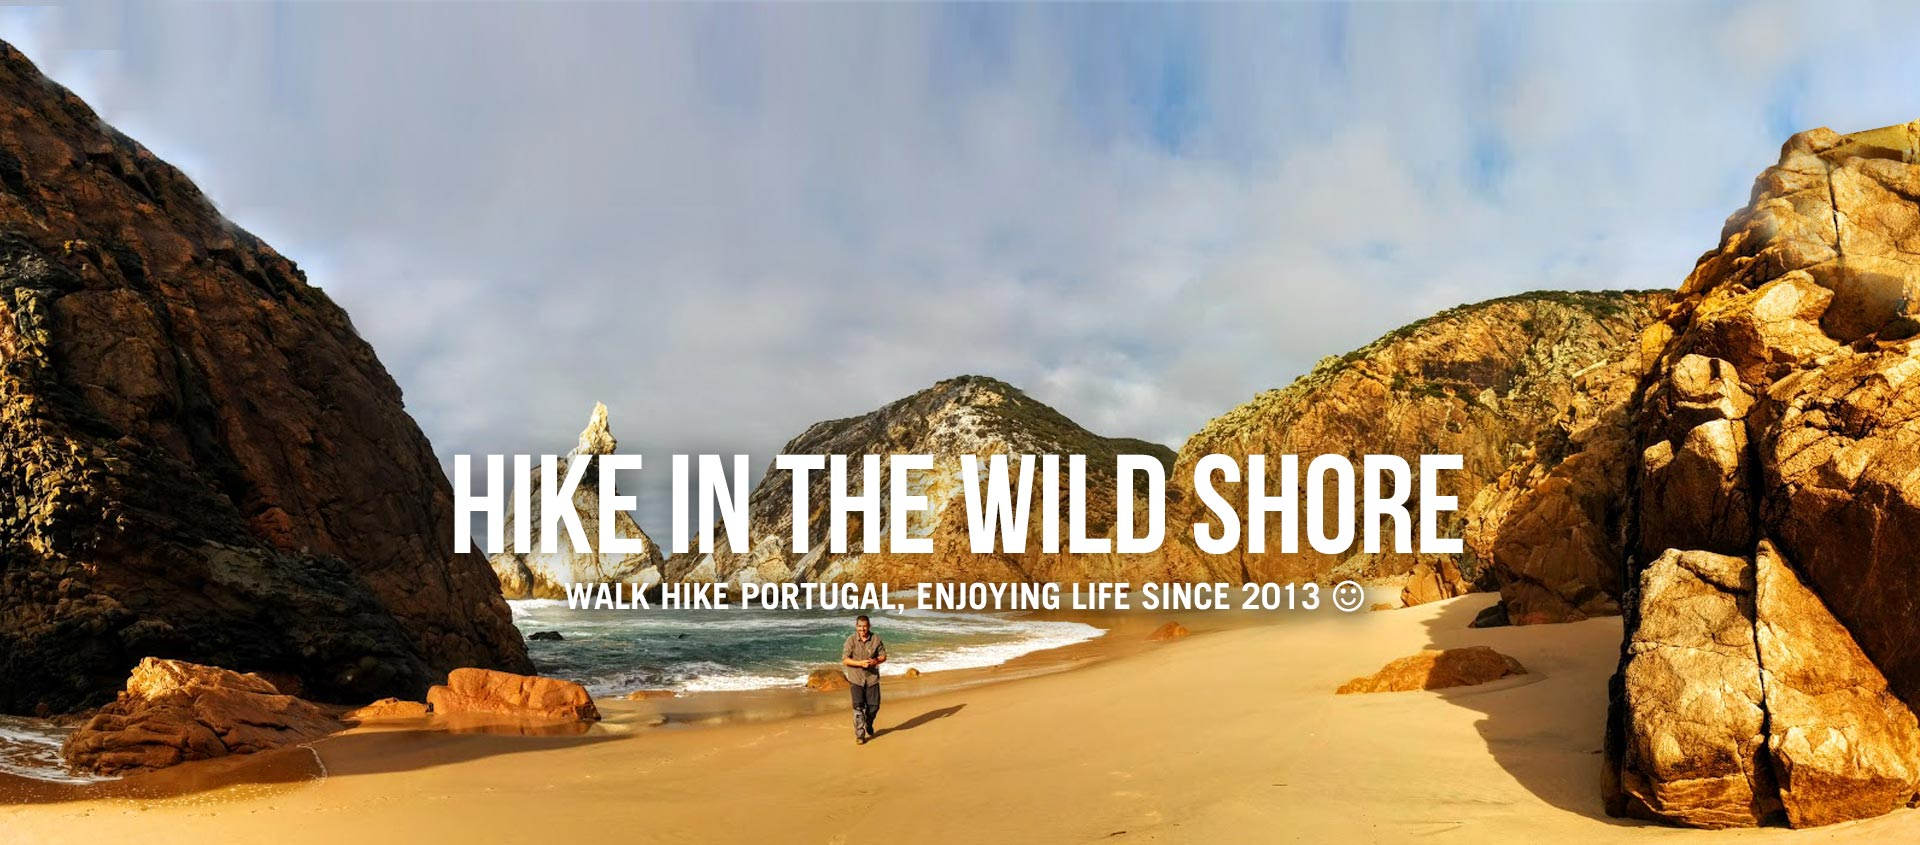 HIKE IN THE WILD SHORE